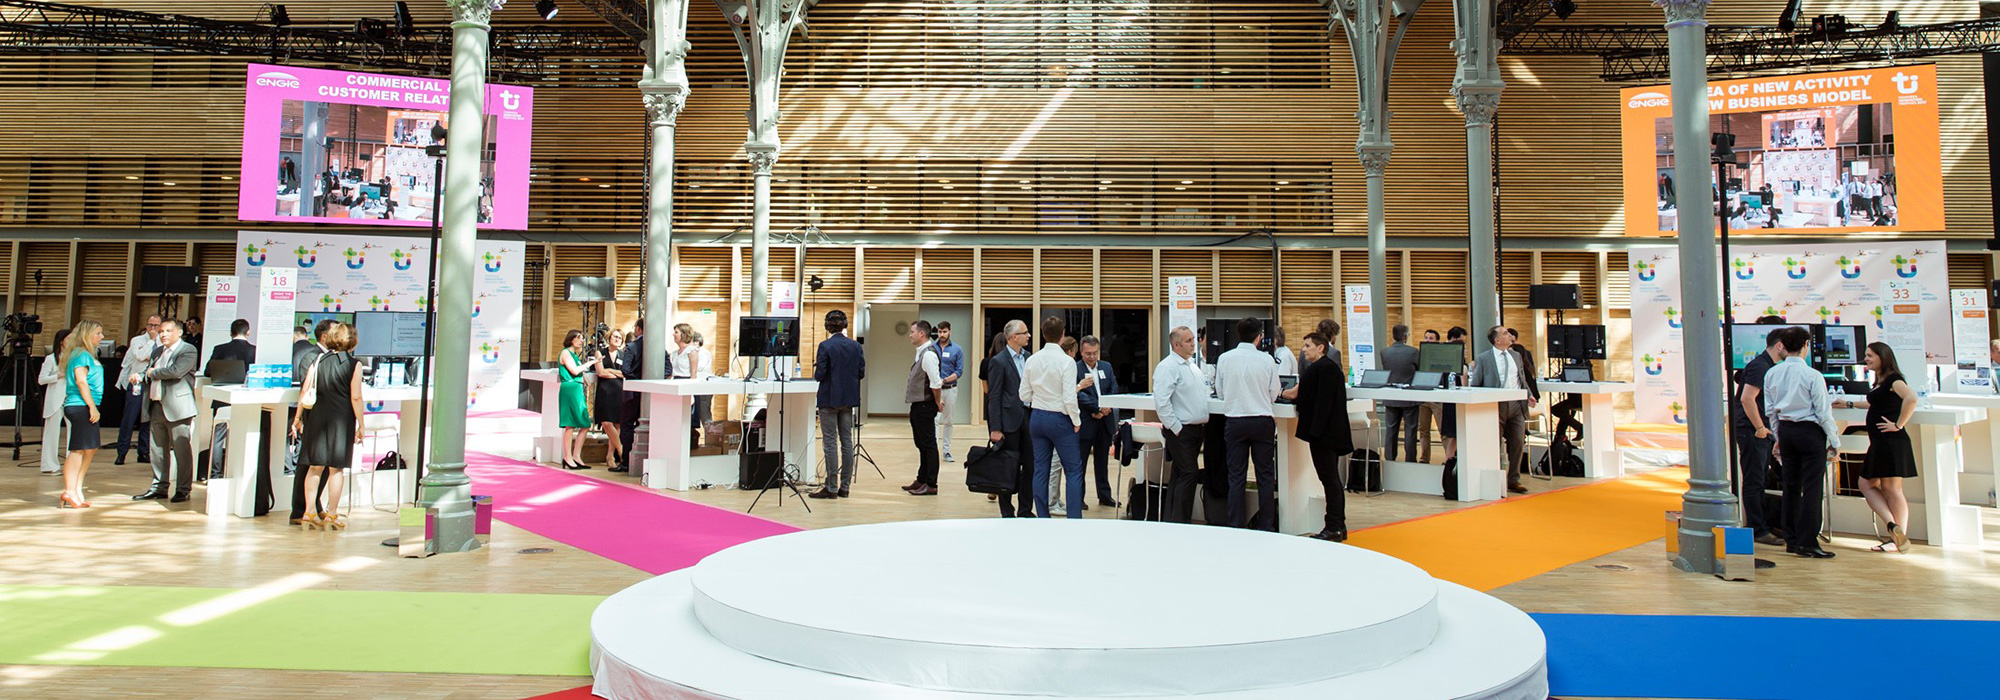 artcomvideo-engie-innovation-day-3